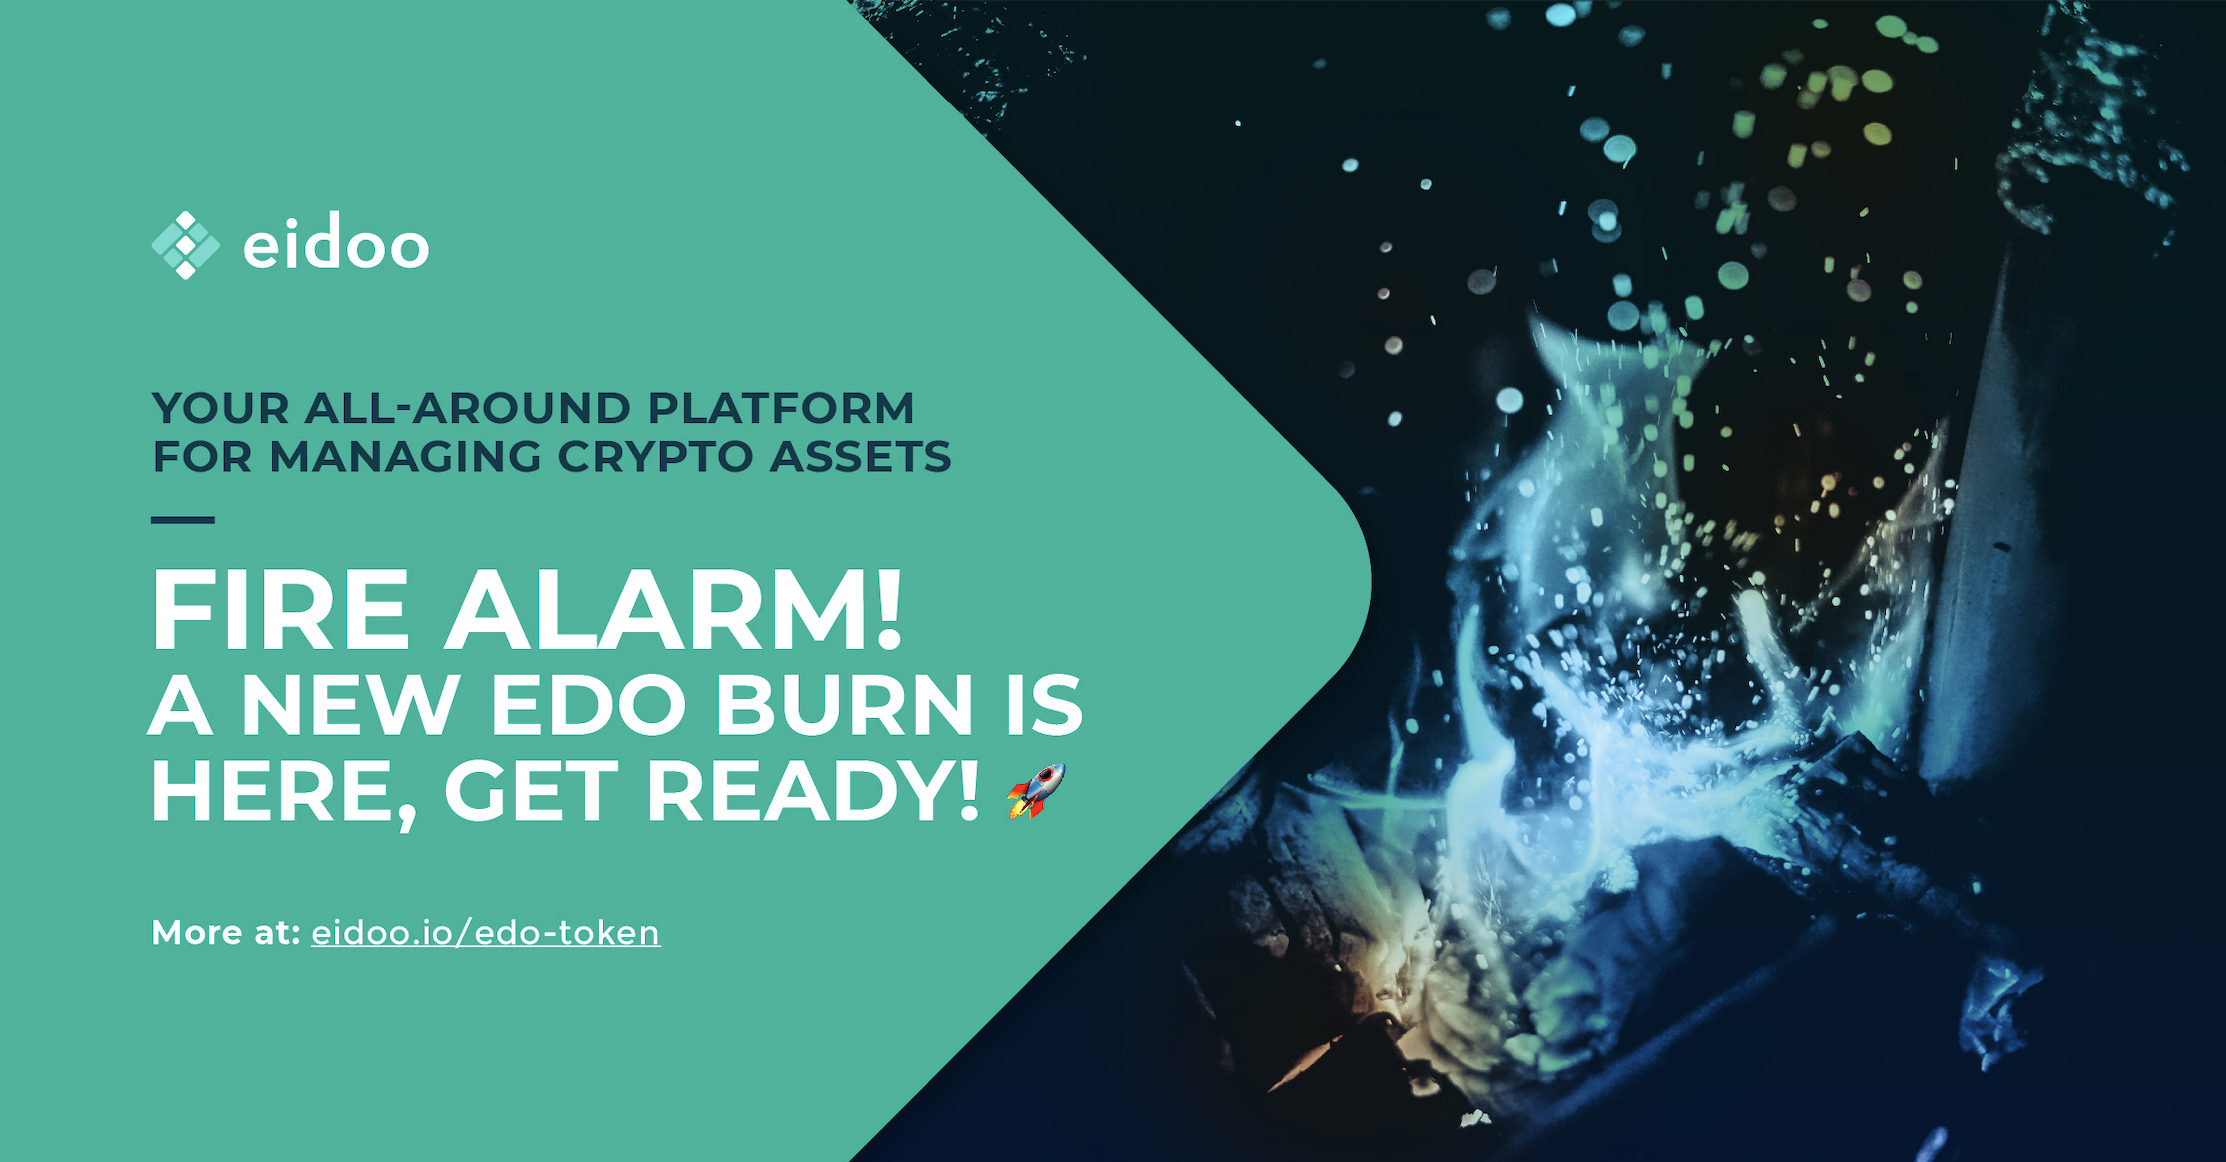 Eidoo Summer update, more than just a burn!